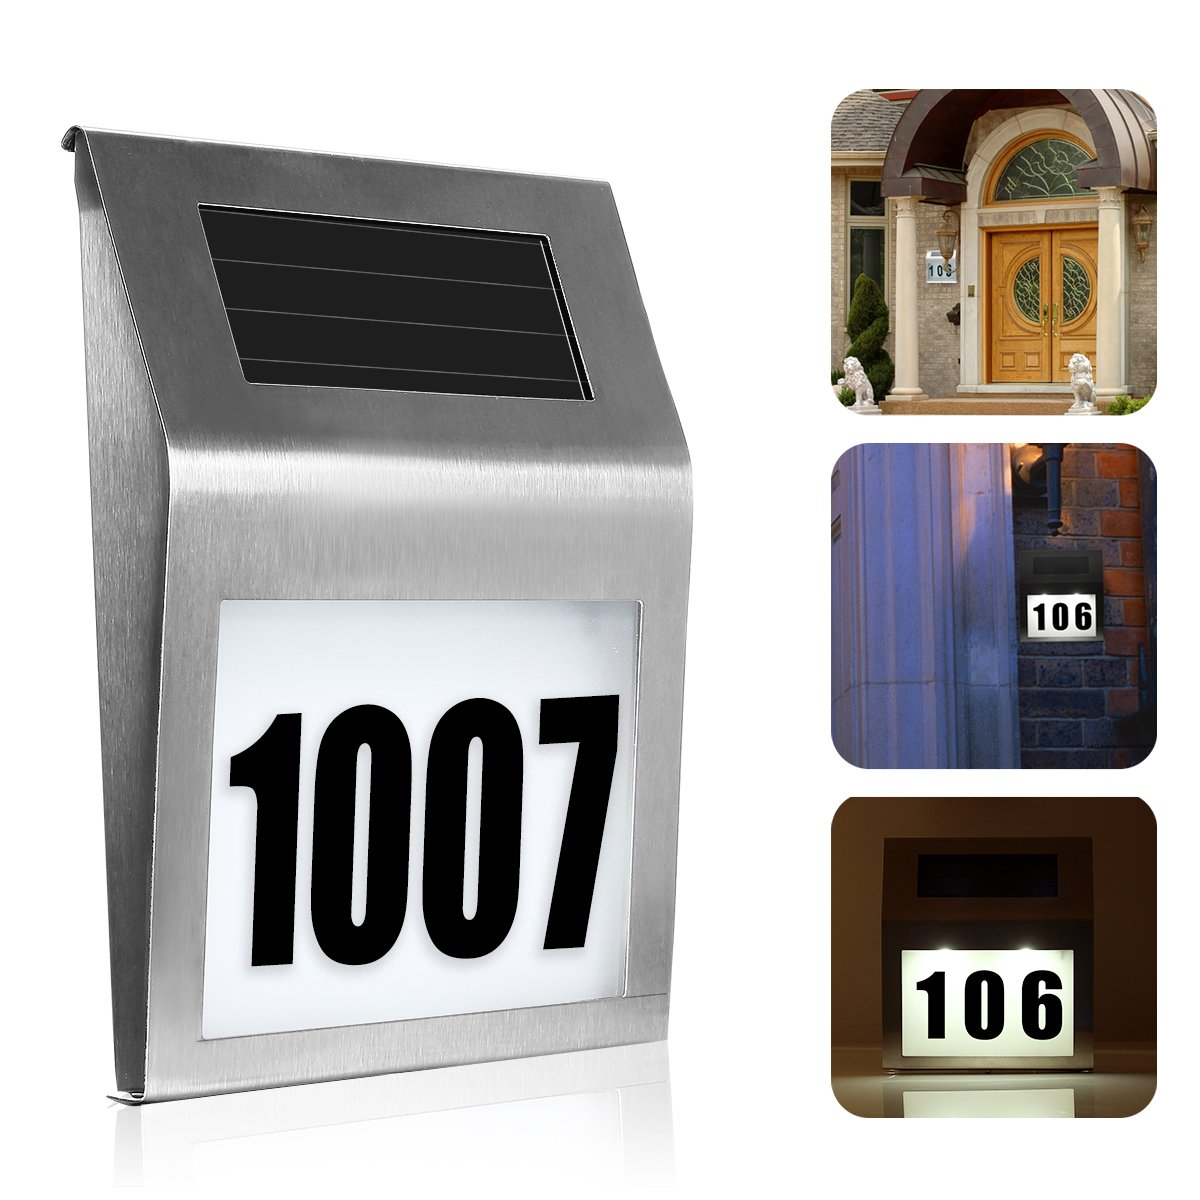 Decorating apartment door numbers pictures : Solar Lighted Address Sign House Number, SOONHUA Decorative Plaque ...